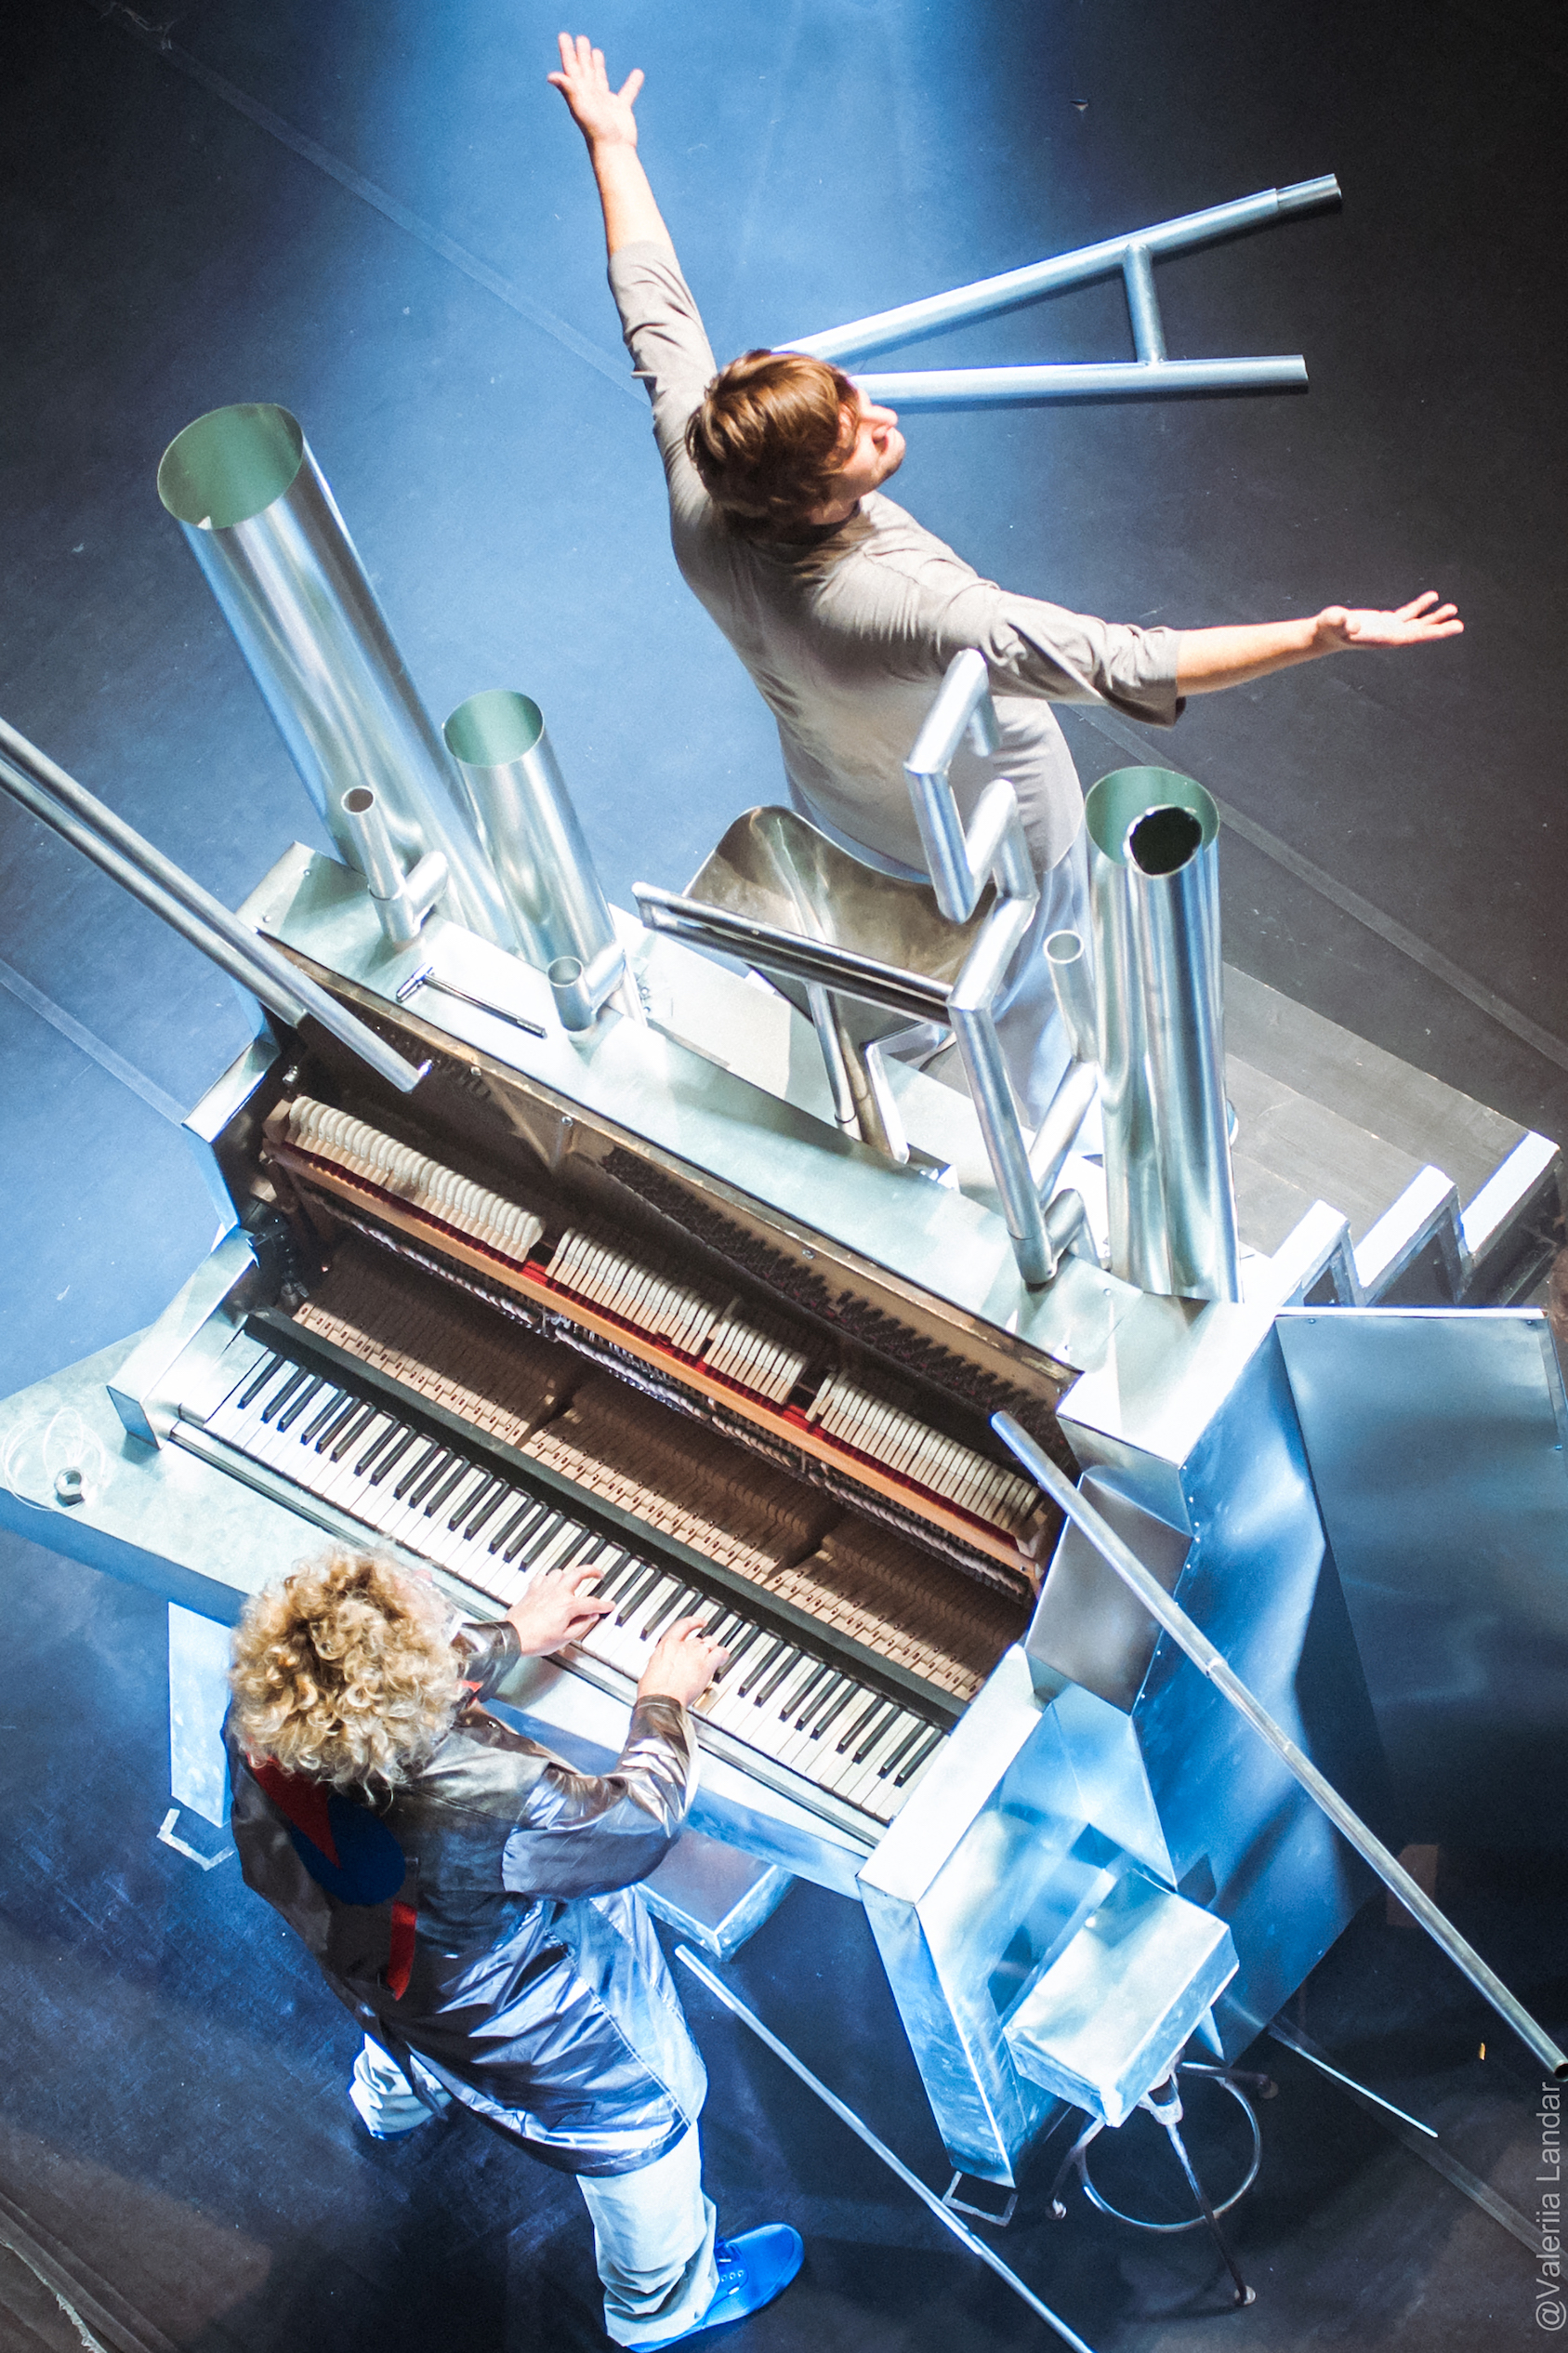 one performer sitting at a piano, another stands on top